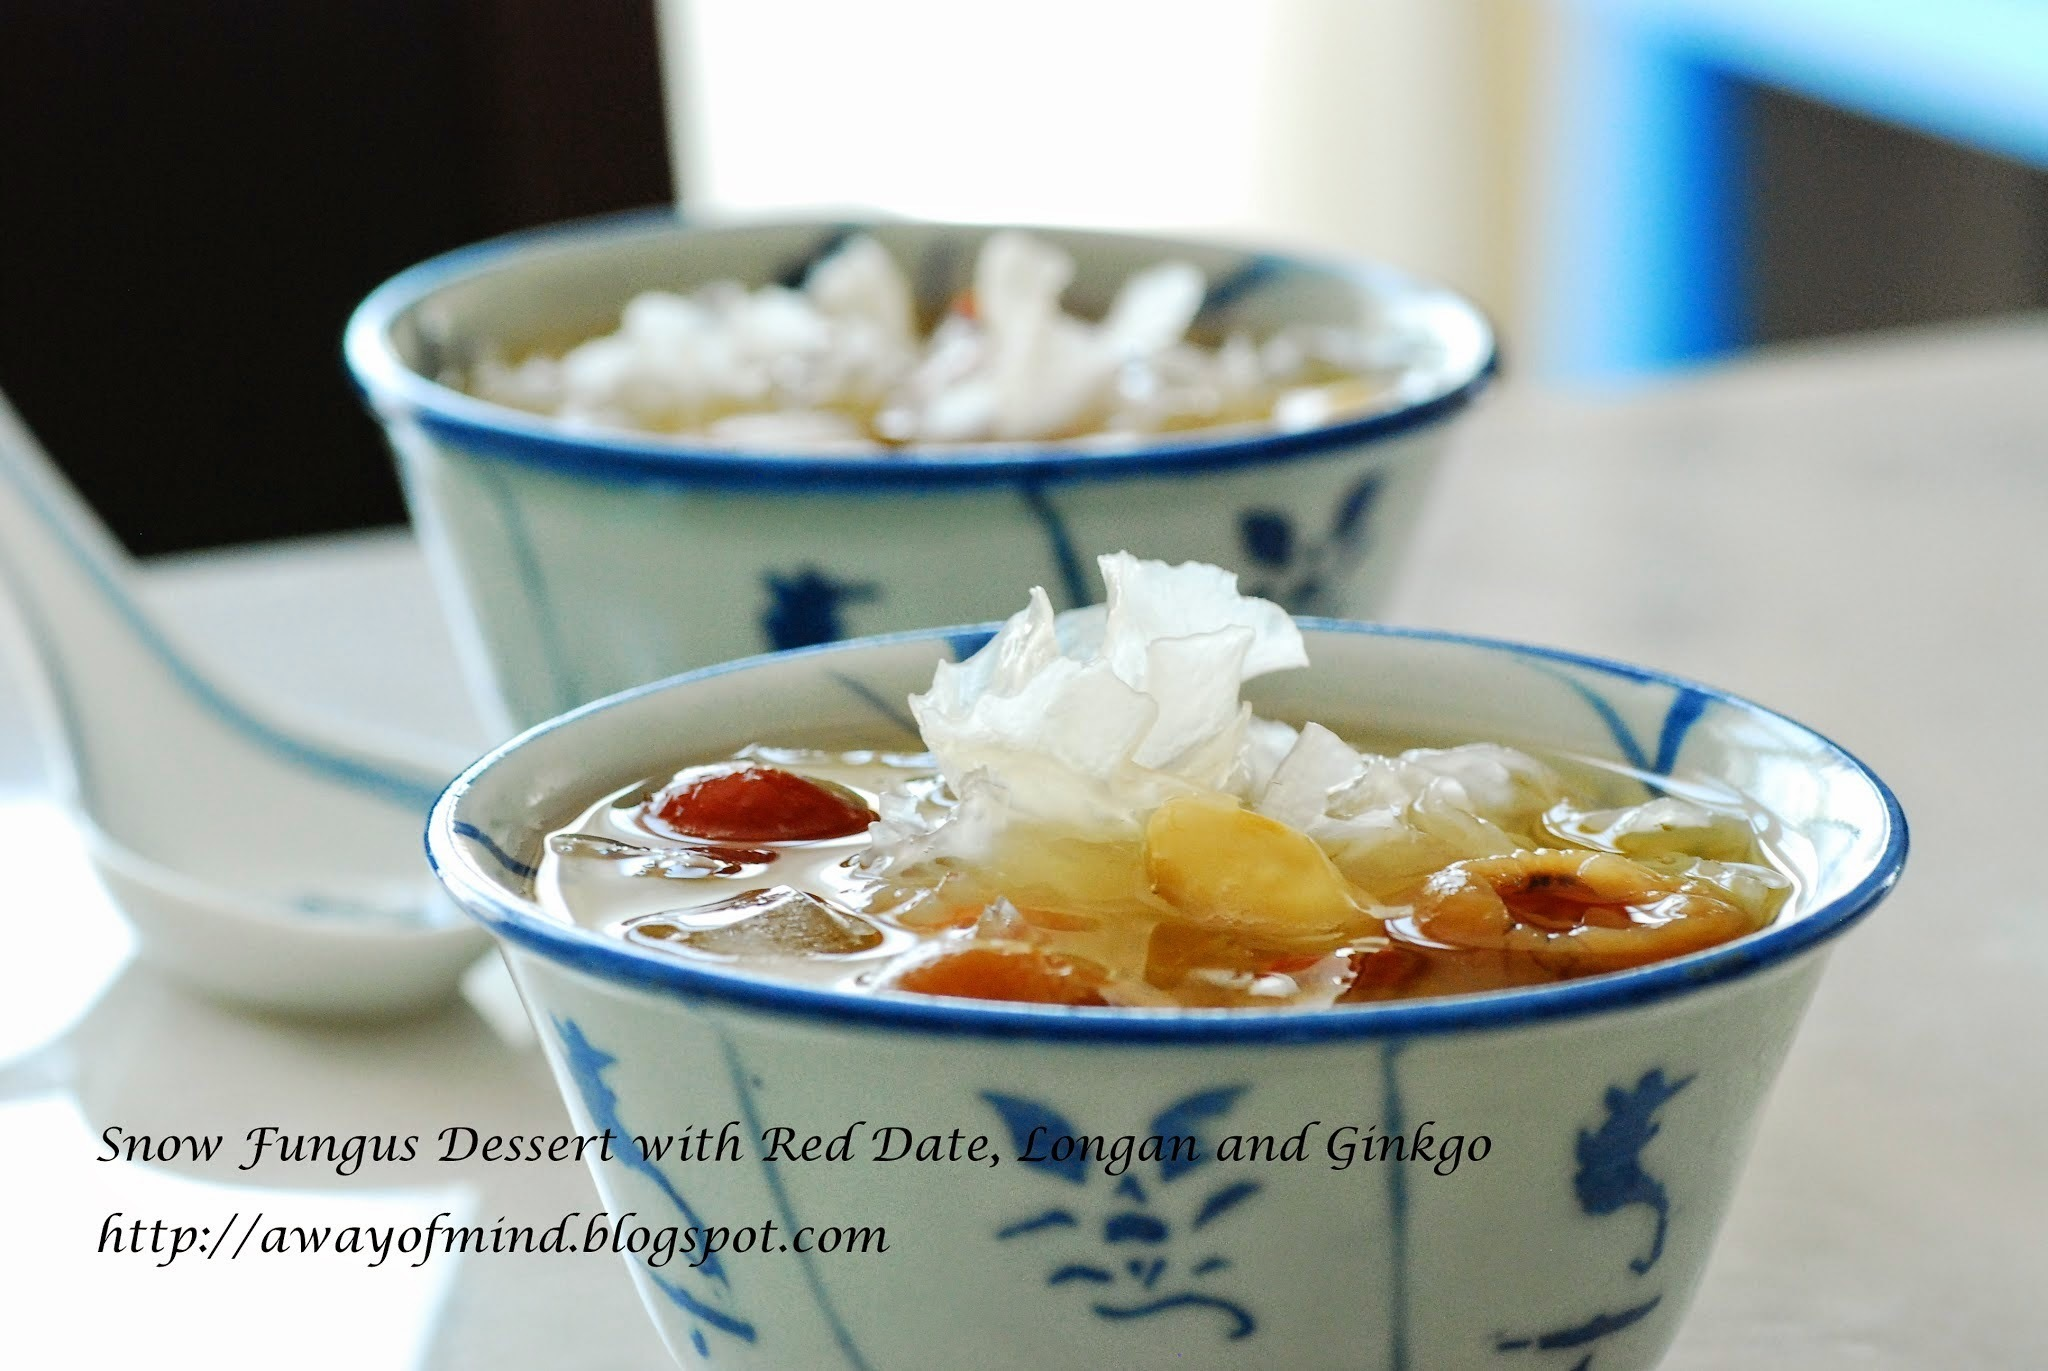 Snow Fungus Dessert with Red Date, Longan and Ginkgo 白果银耳红枣龙眼糖水